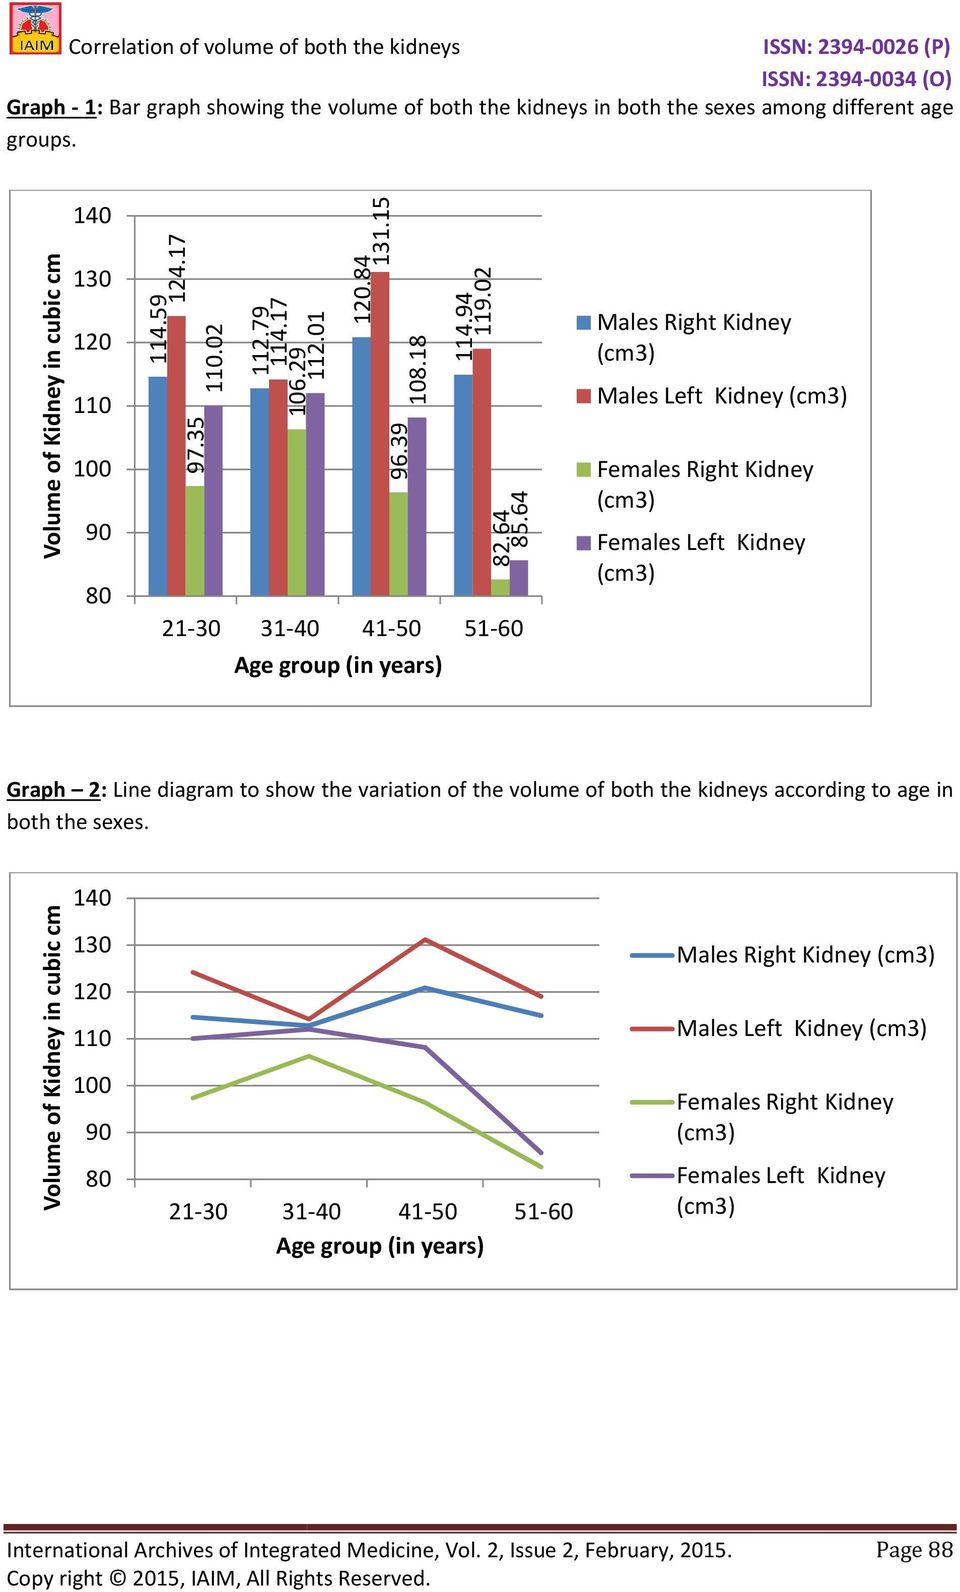 64 21-30 31-40 41-50 51-60 Age group (in years) Males Right Kidney Males Left Kidney Females Right Kidney Females Left Kidney Graph 2: Line diagram to show the variation of